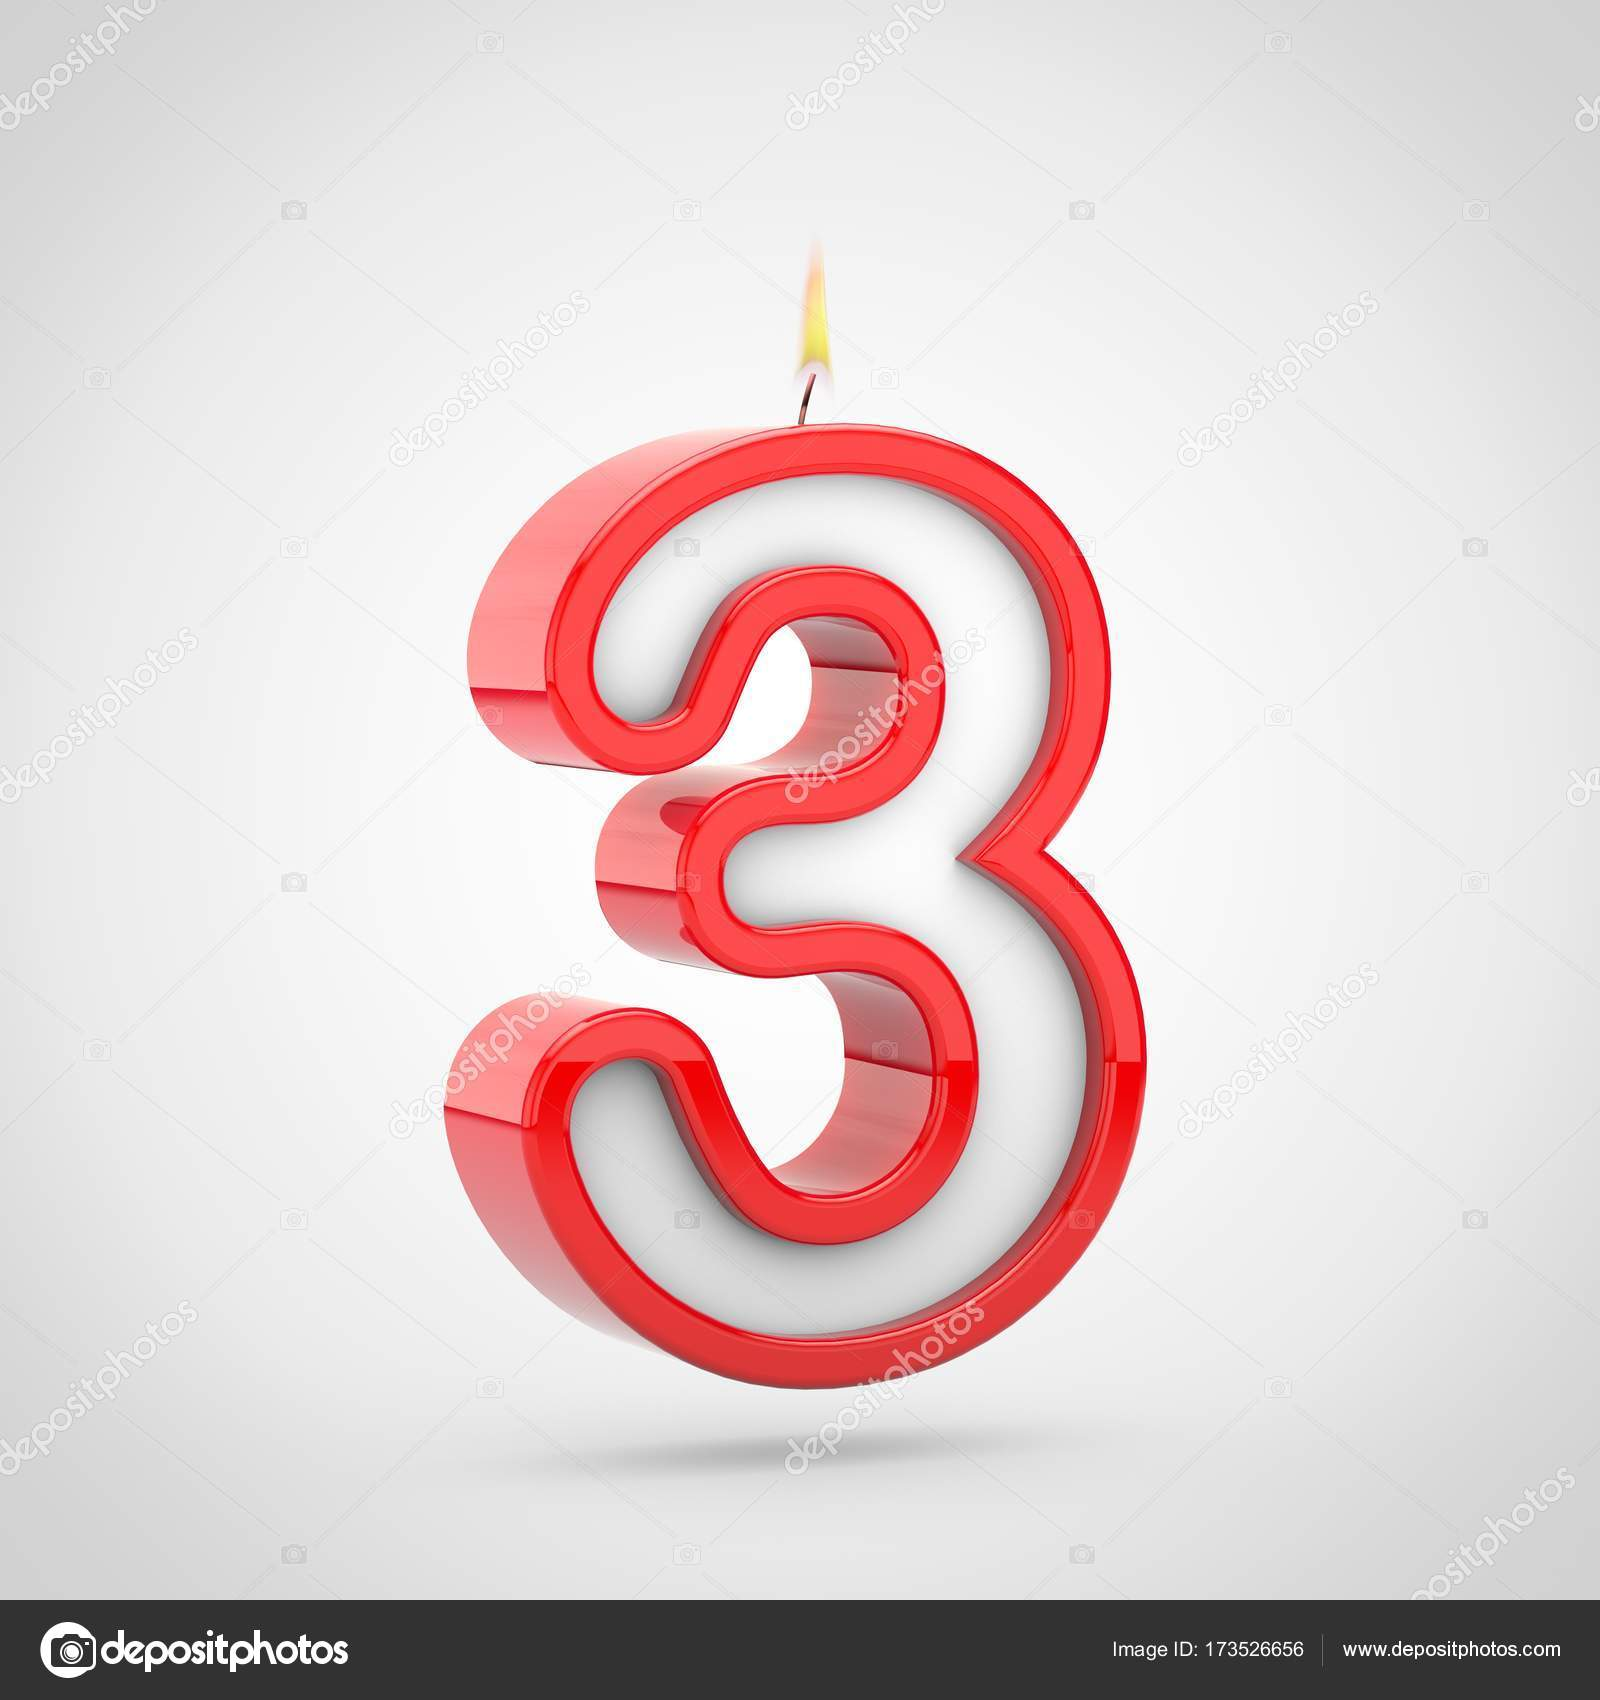 3D Render Of Birthday Candle Number 3 With Wick And Flame Isolated On White Background Photo By